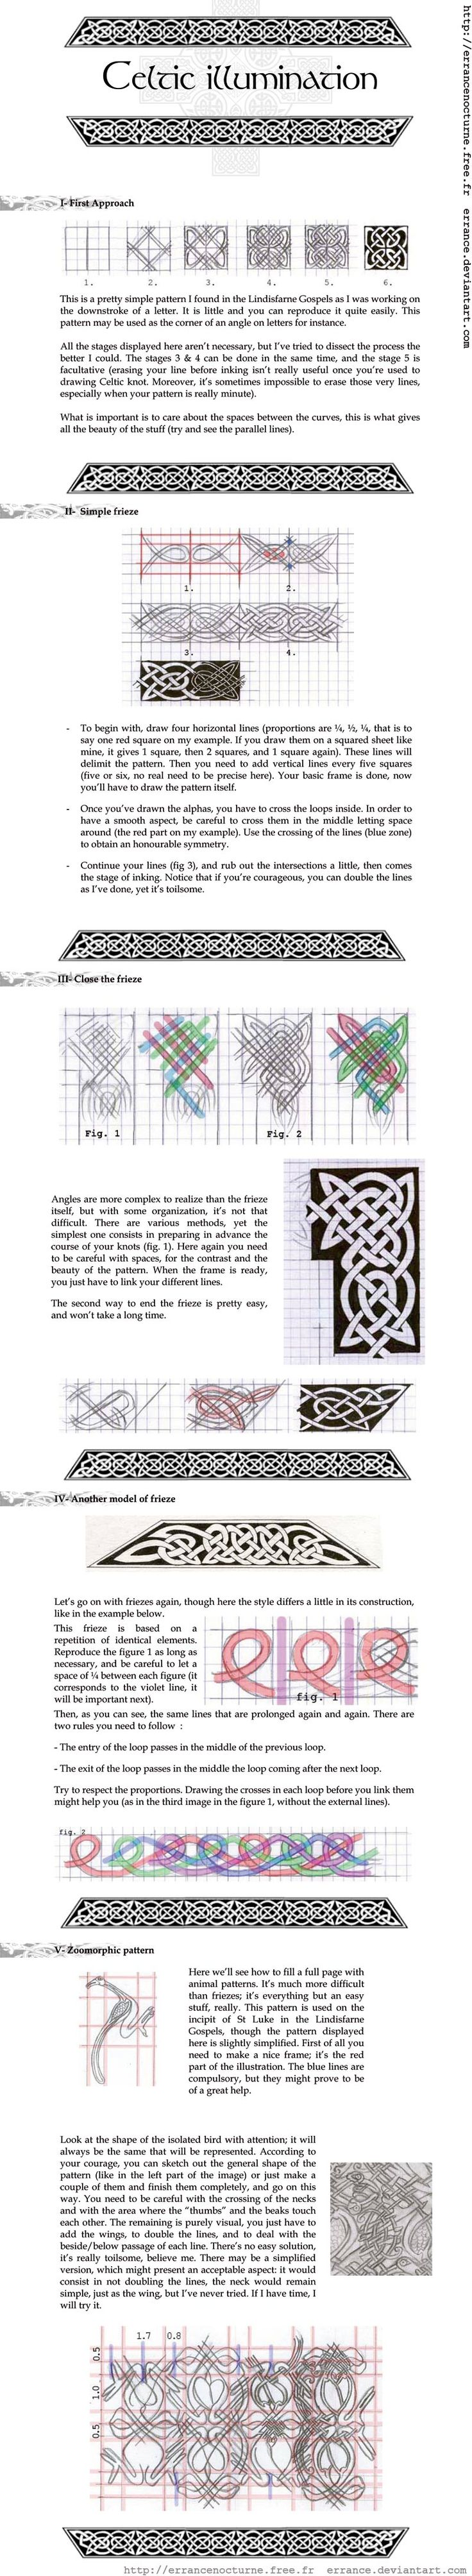 59 Best Celtic Knots Images On Pinterest Brittany Draw And Druid